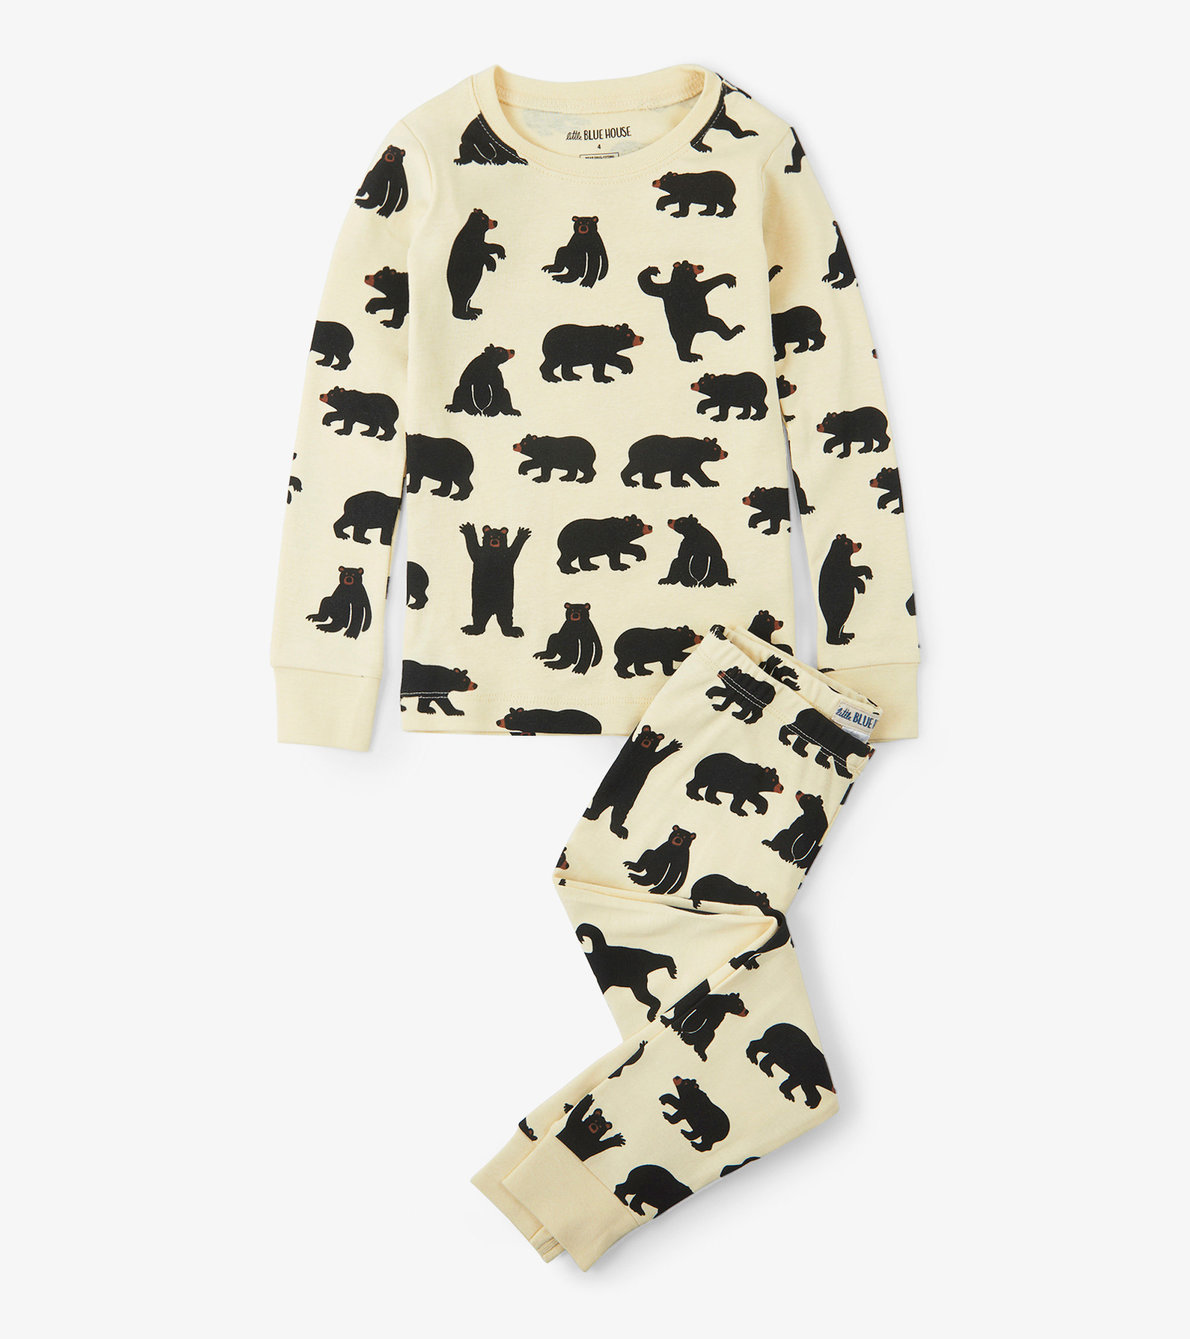 View larger image of Black Bears Kids Pajama Set